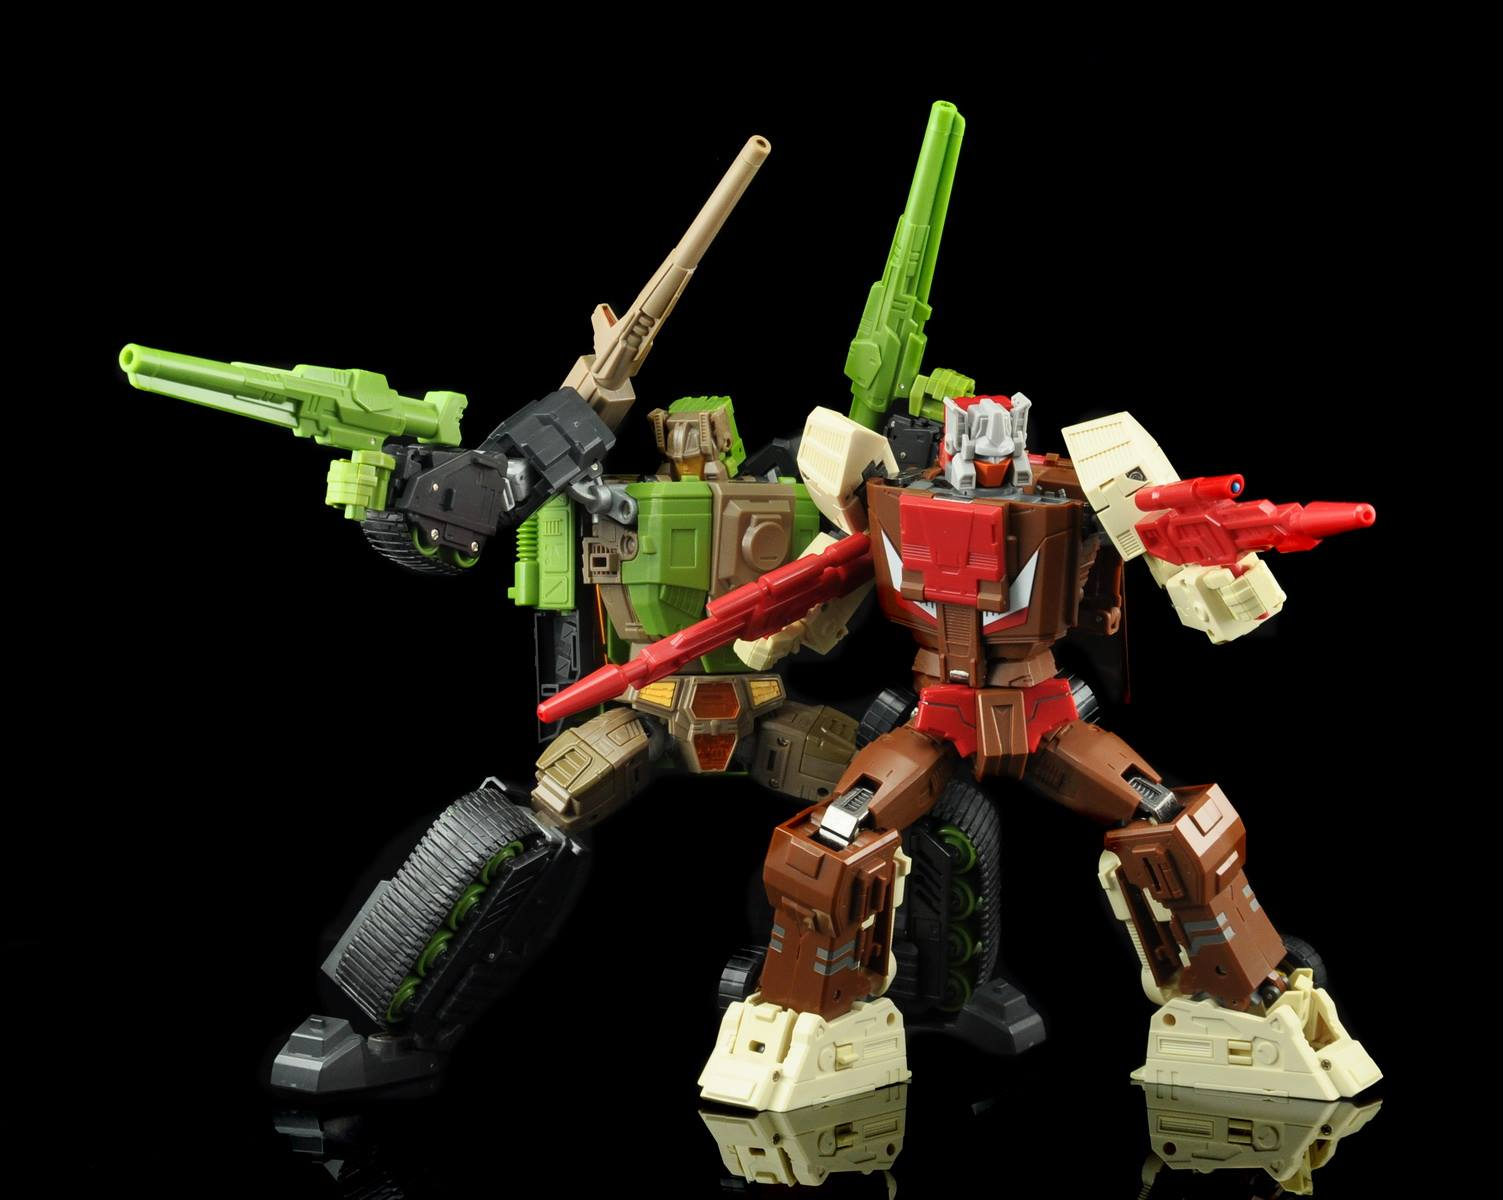 [Maketoys] Produit Tiers - Jouets MTRM - aka Headmasters et Targetmasters - Page 2 Iron-Will-07